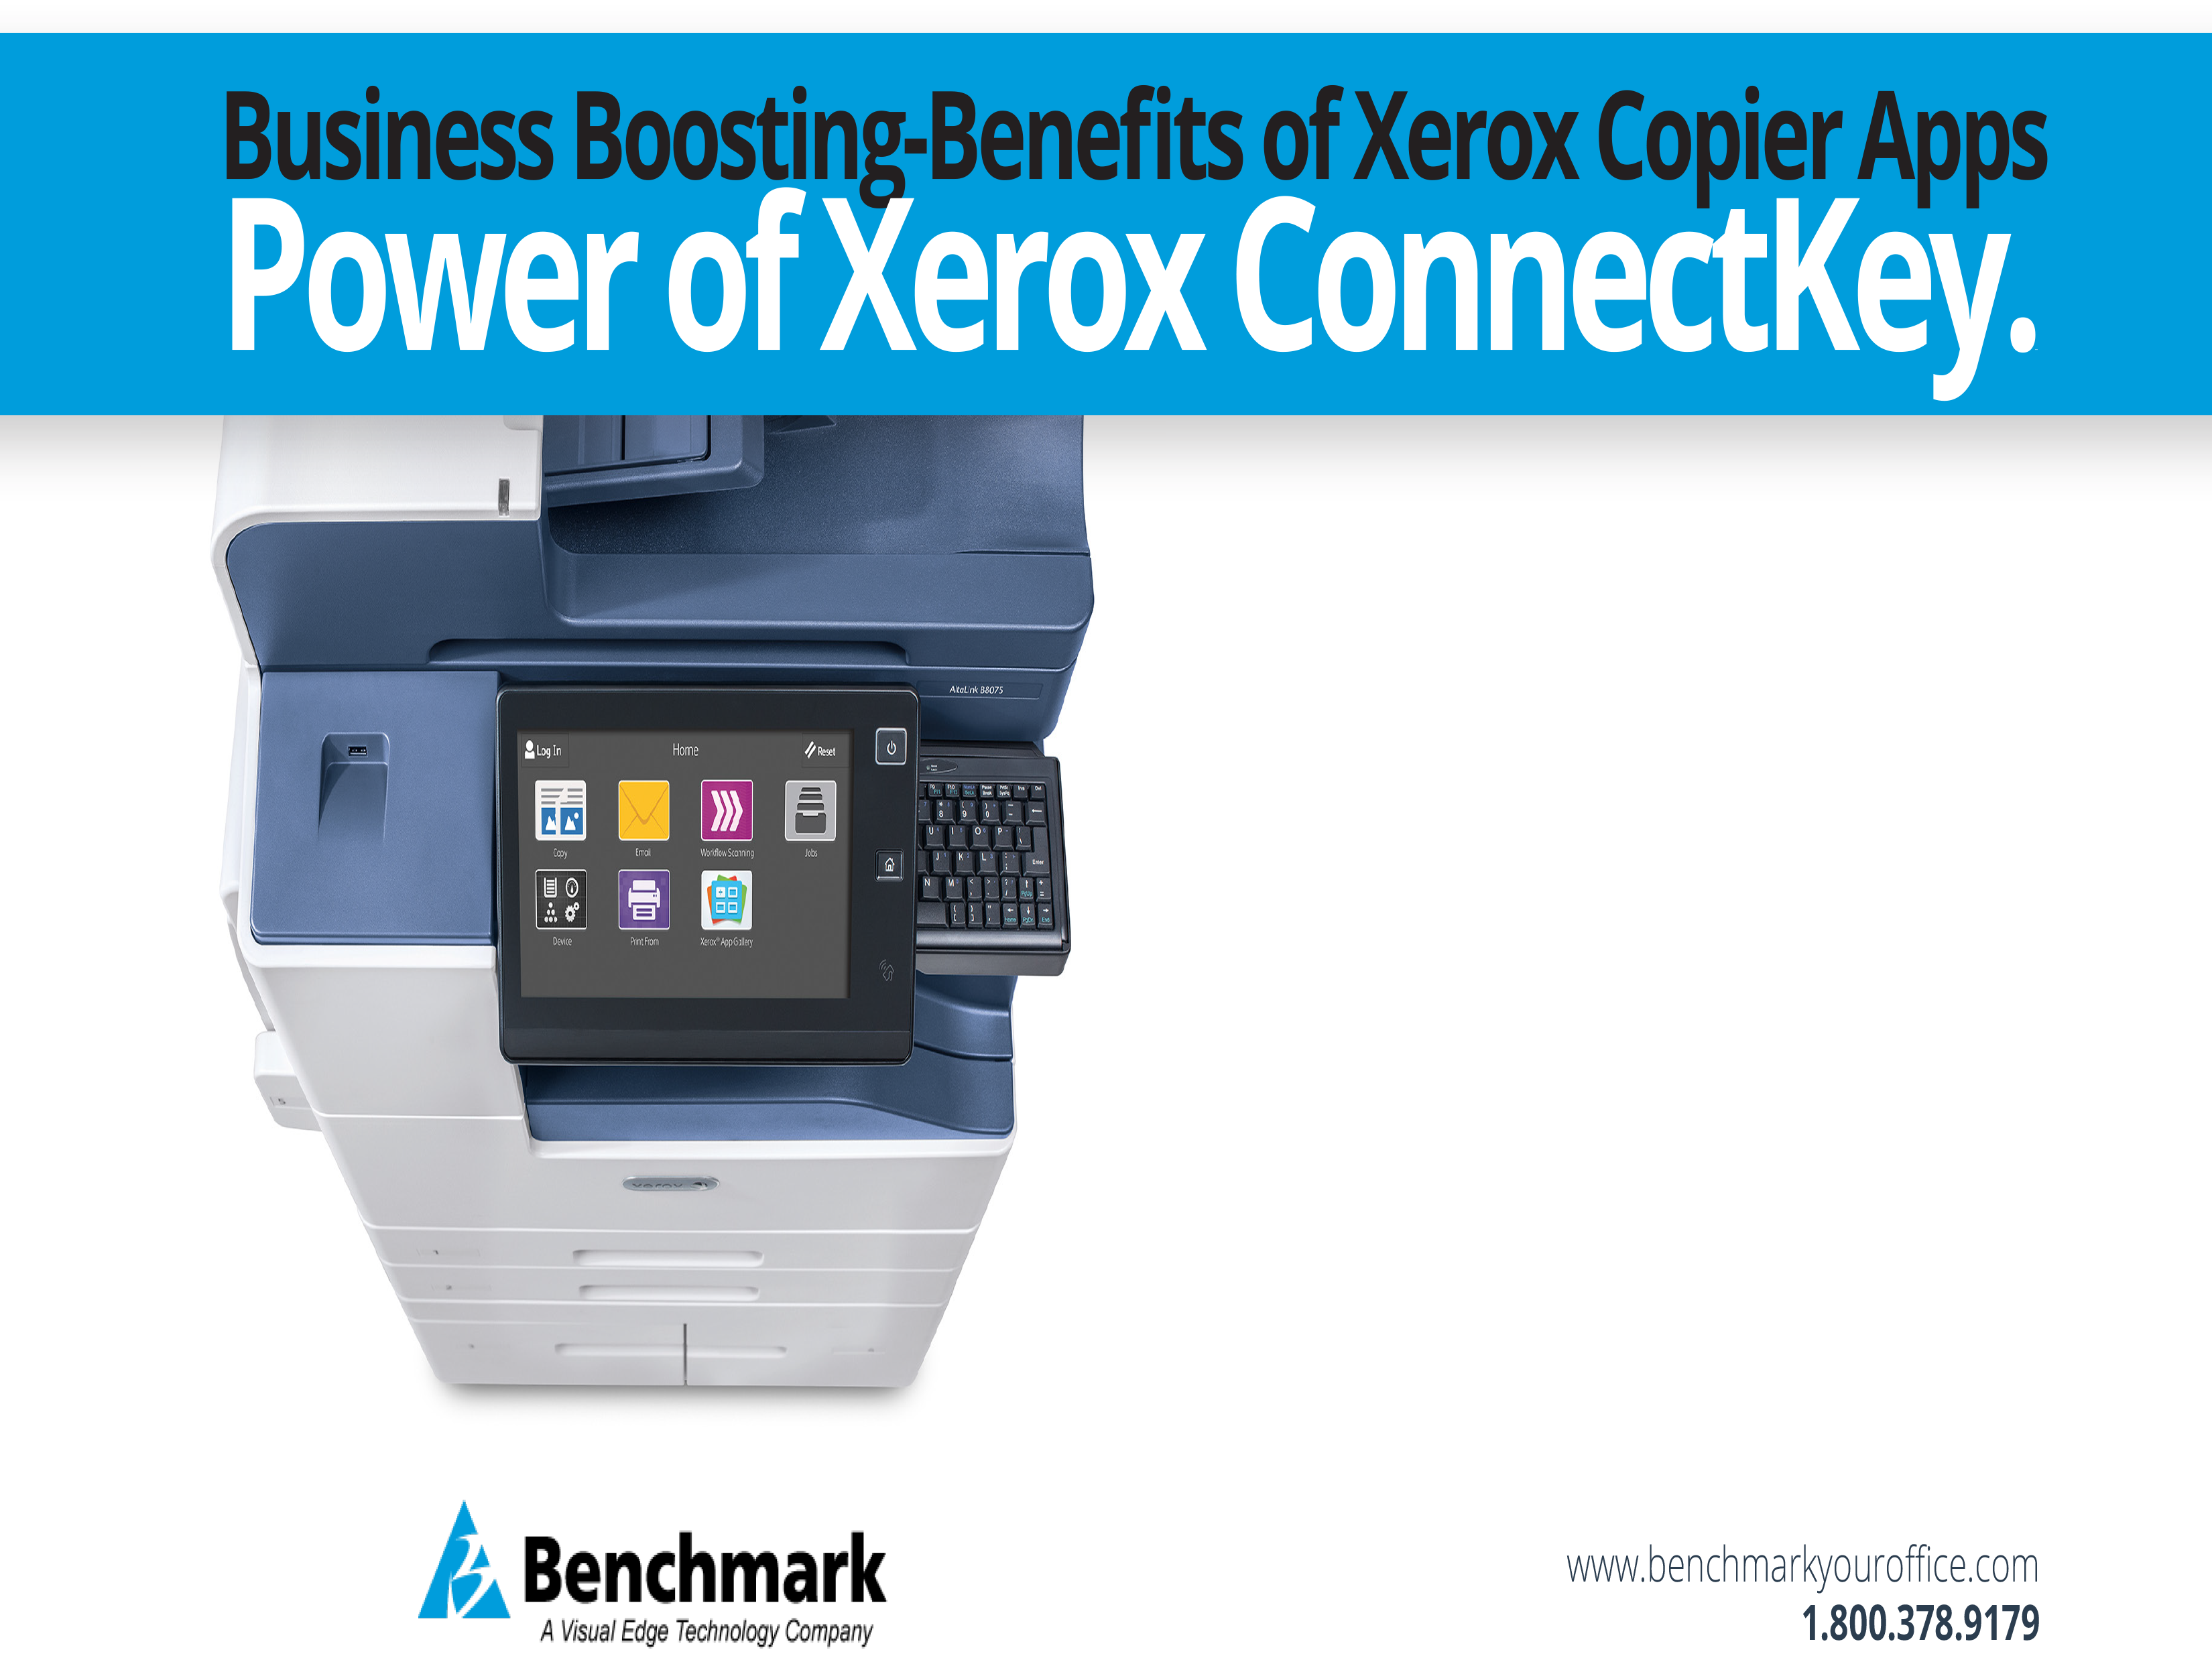 Save Yourself Time AND Get More Done With Xerox Copier Apps